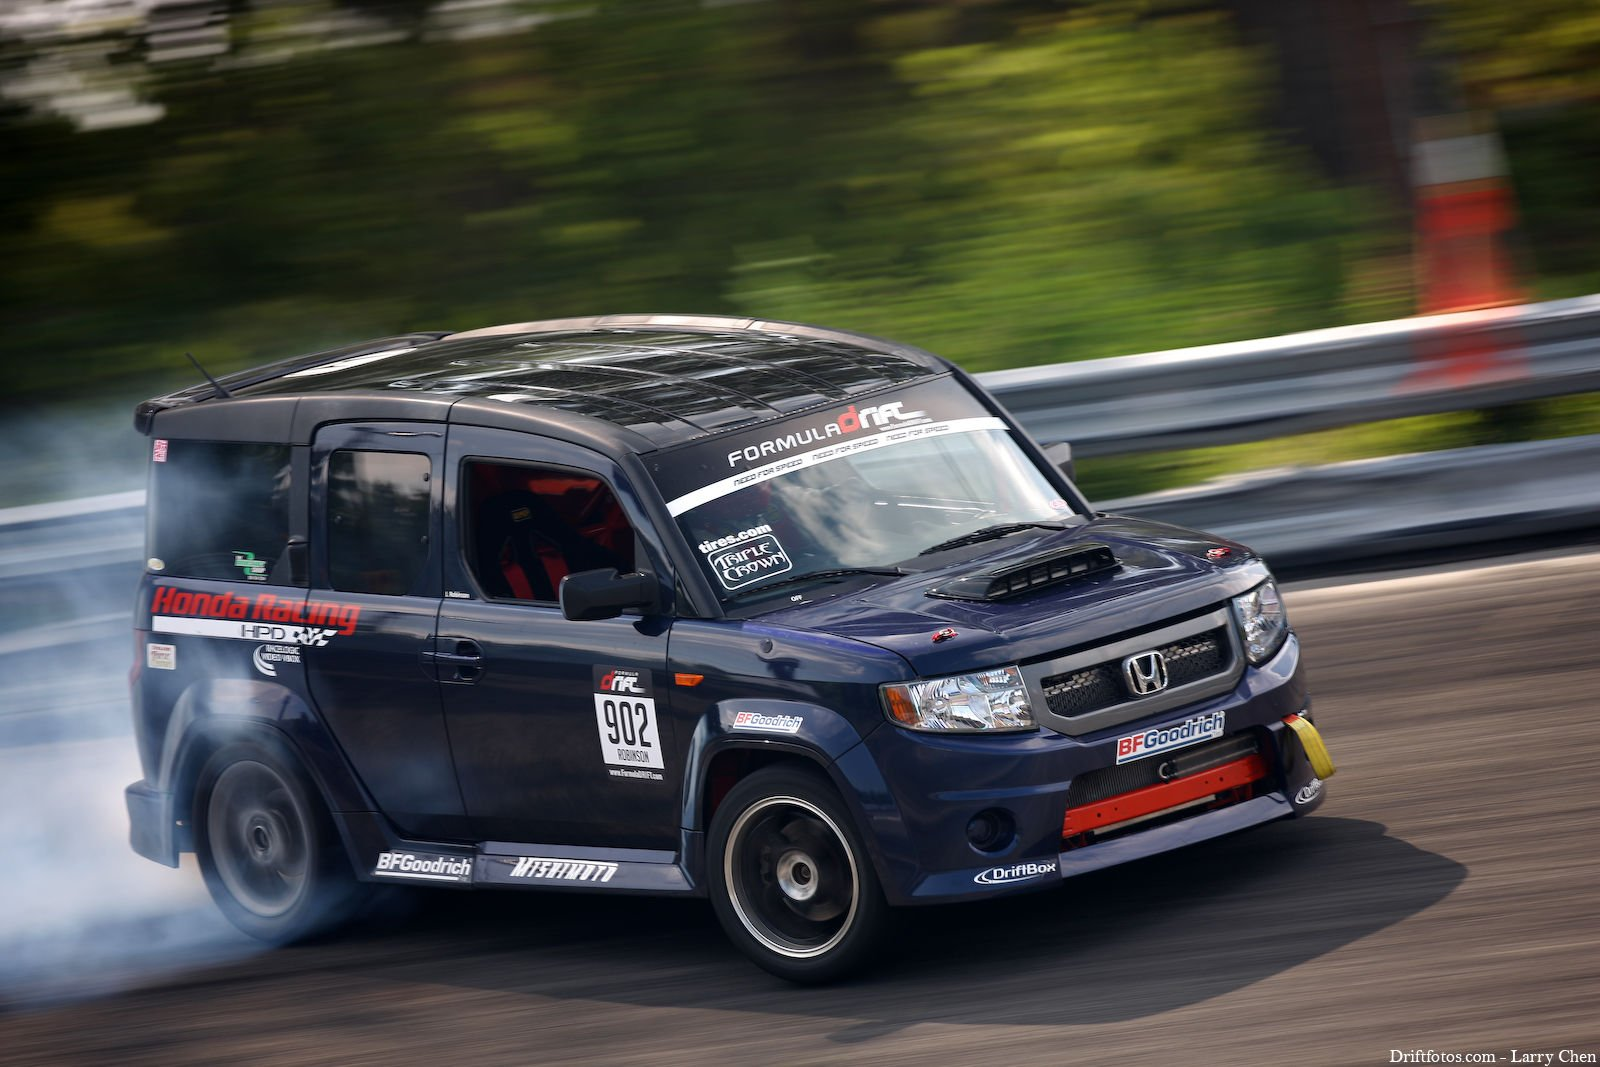 Jdm Honda Element Sliding Drift